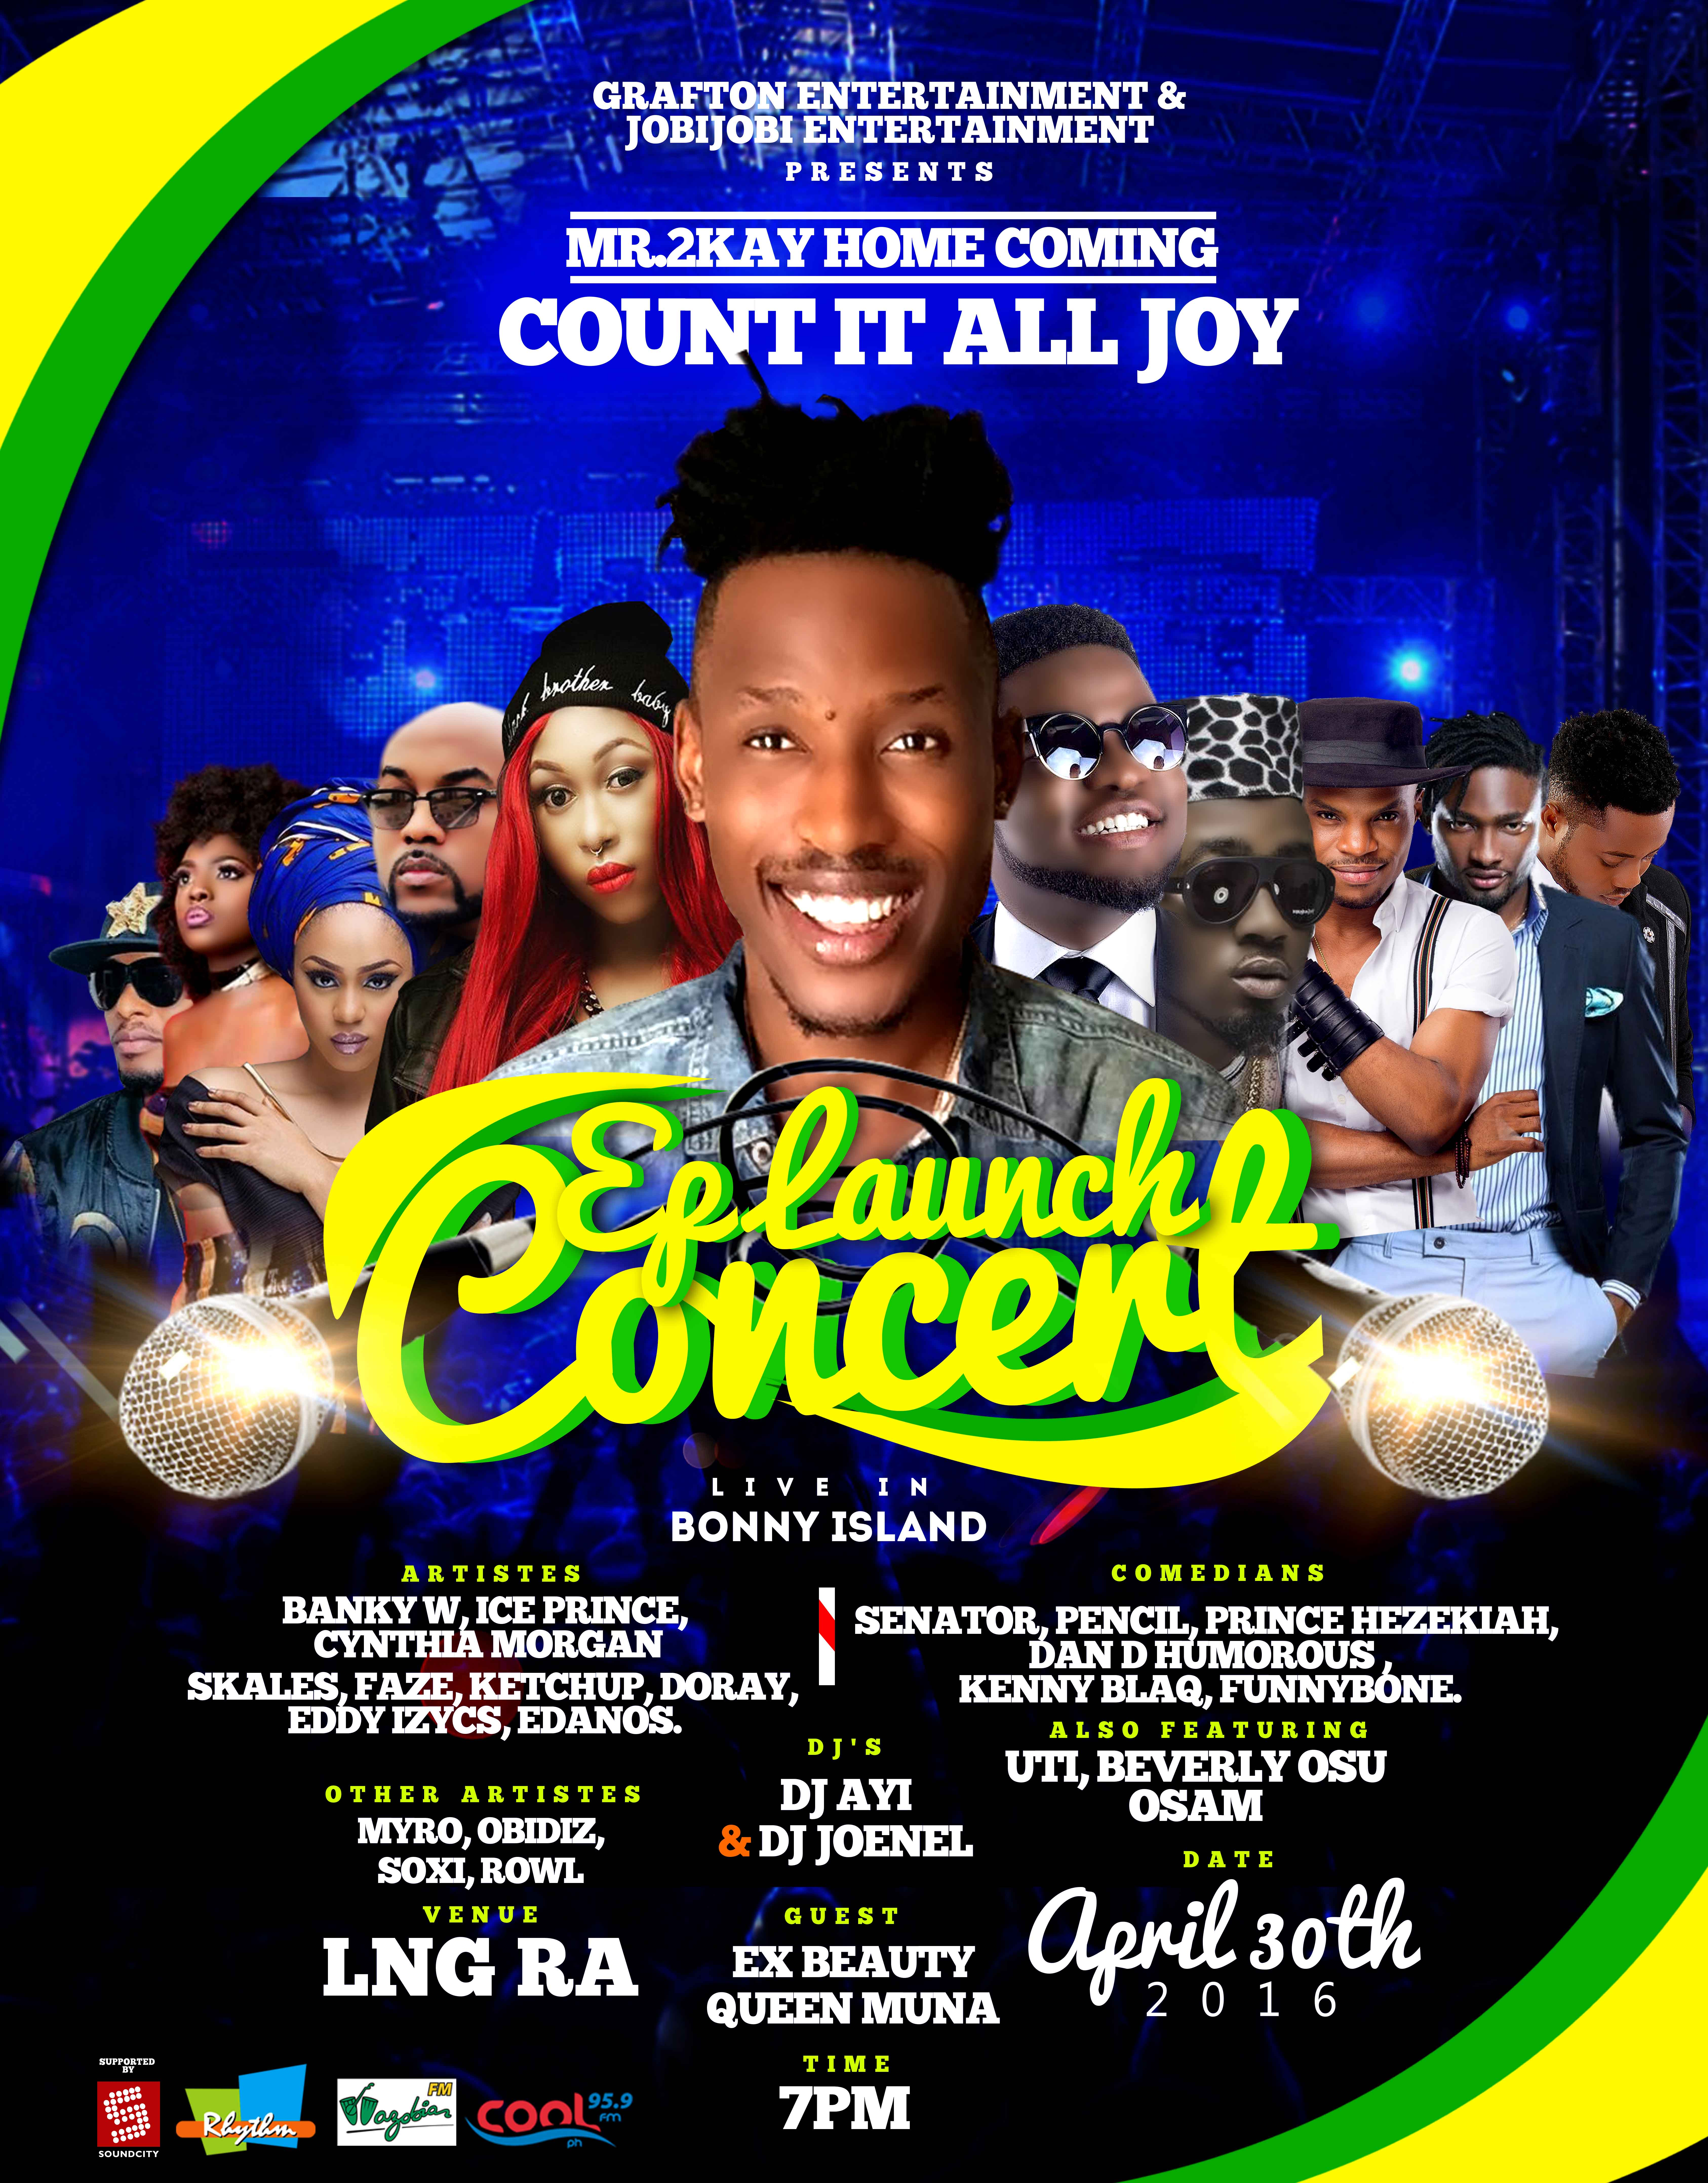 """Banky W, Ice Prince, Cynthia Morgan,  Skales, Faze, Uti and Others Headlines for Mr 2Kay's """" Count It All Joy EP """" in Bonny Island"""